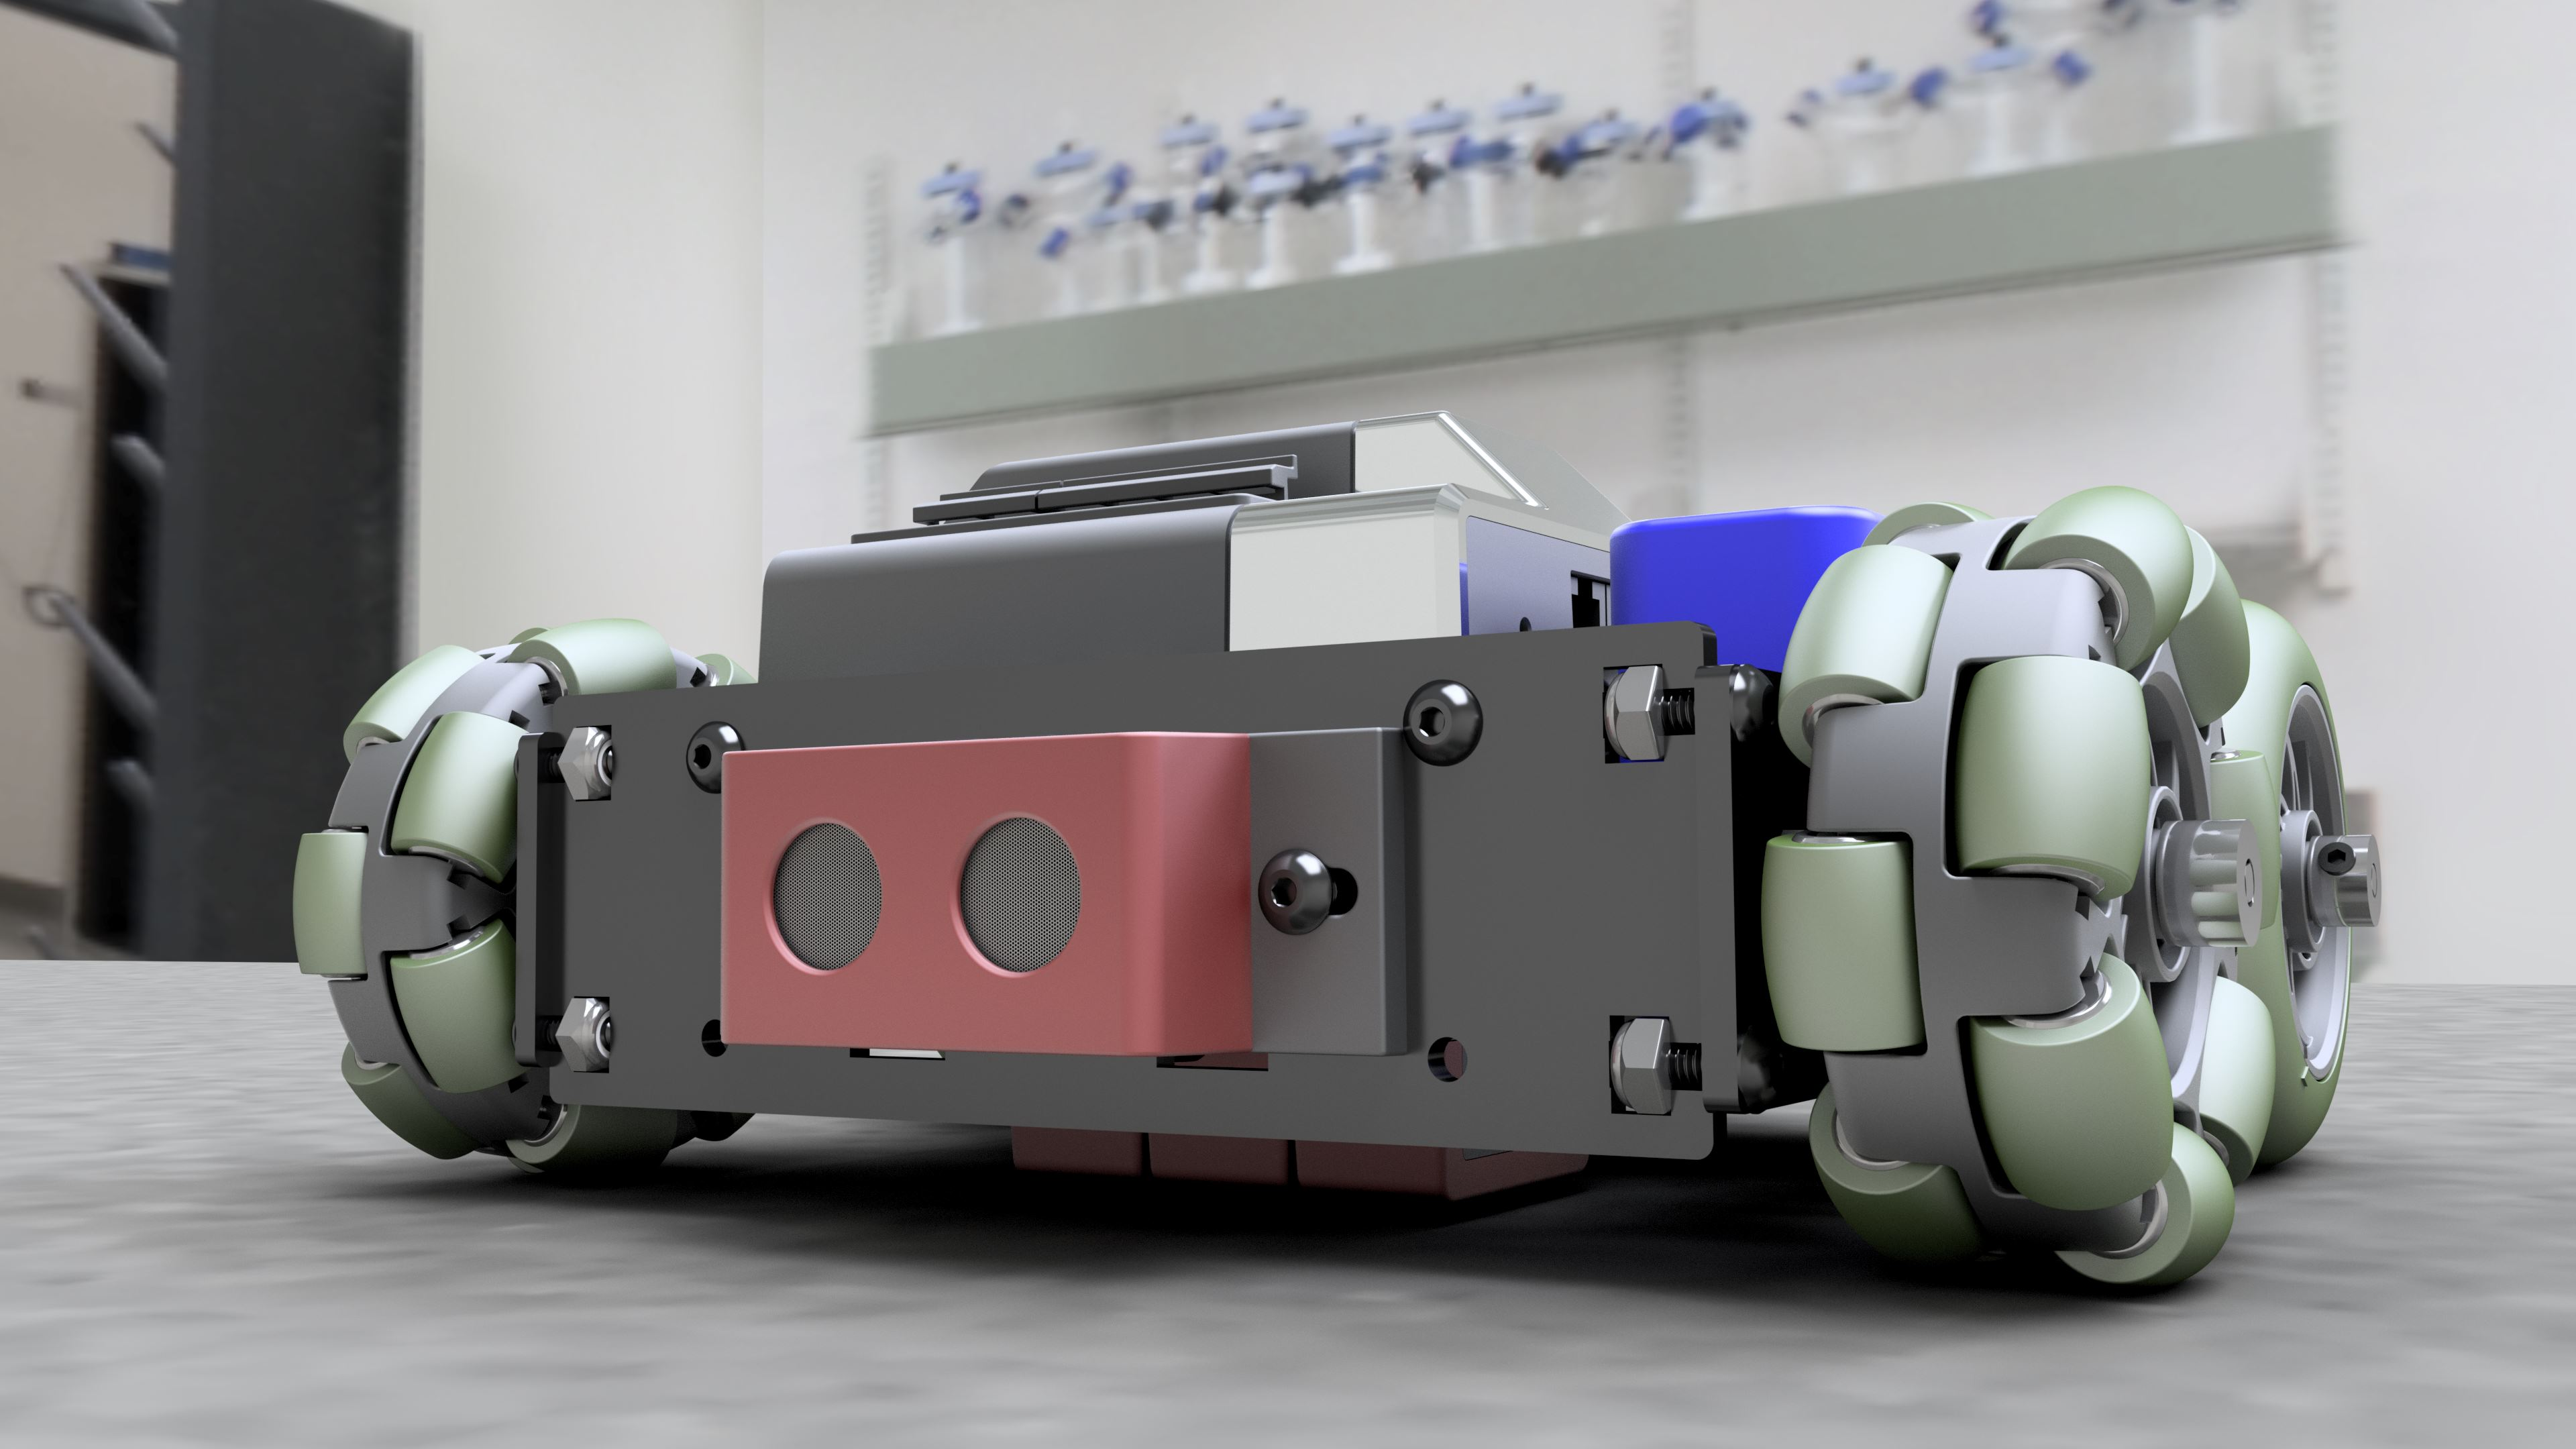 Realistic render of the rover. The model was created in Autodesk Inventor and rendered in Inventor Studio.